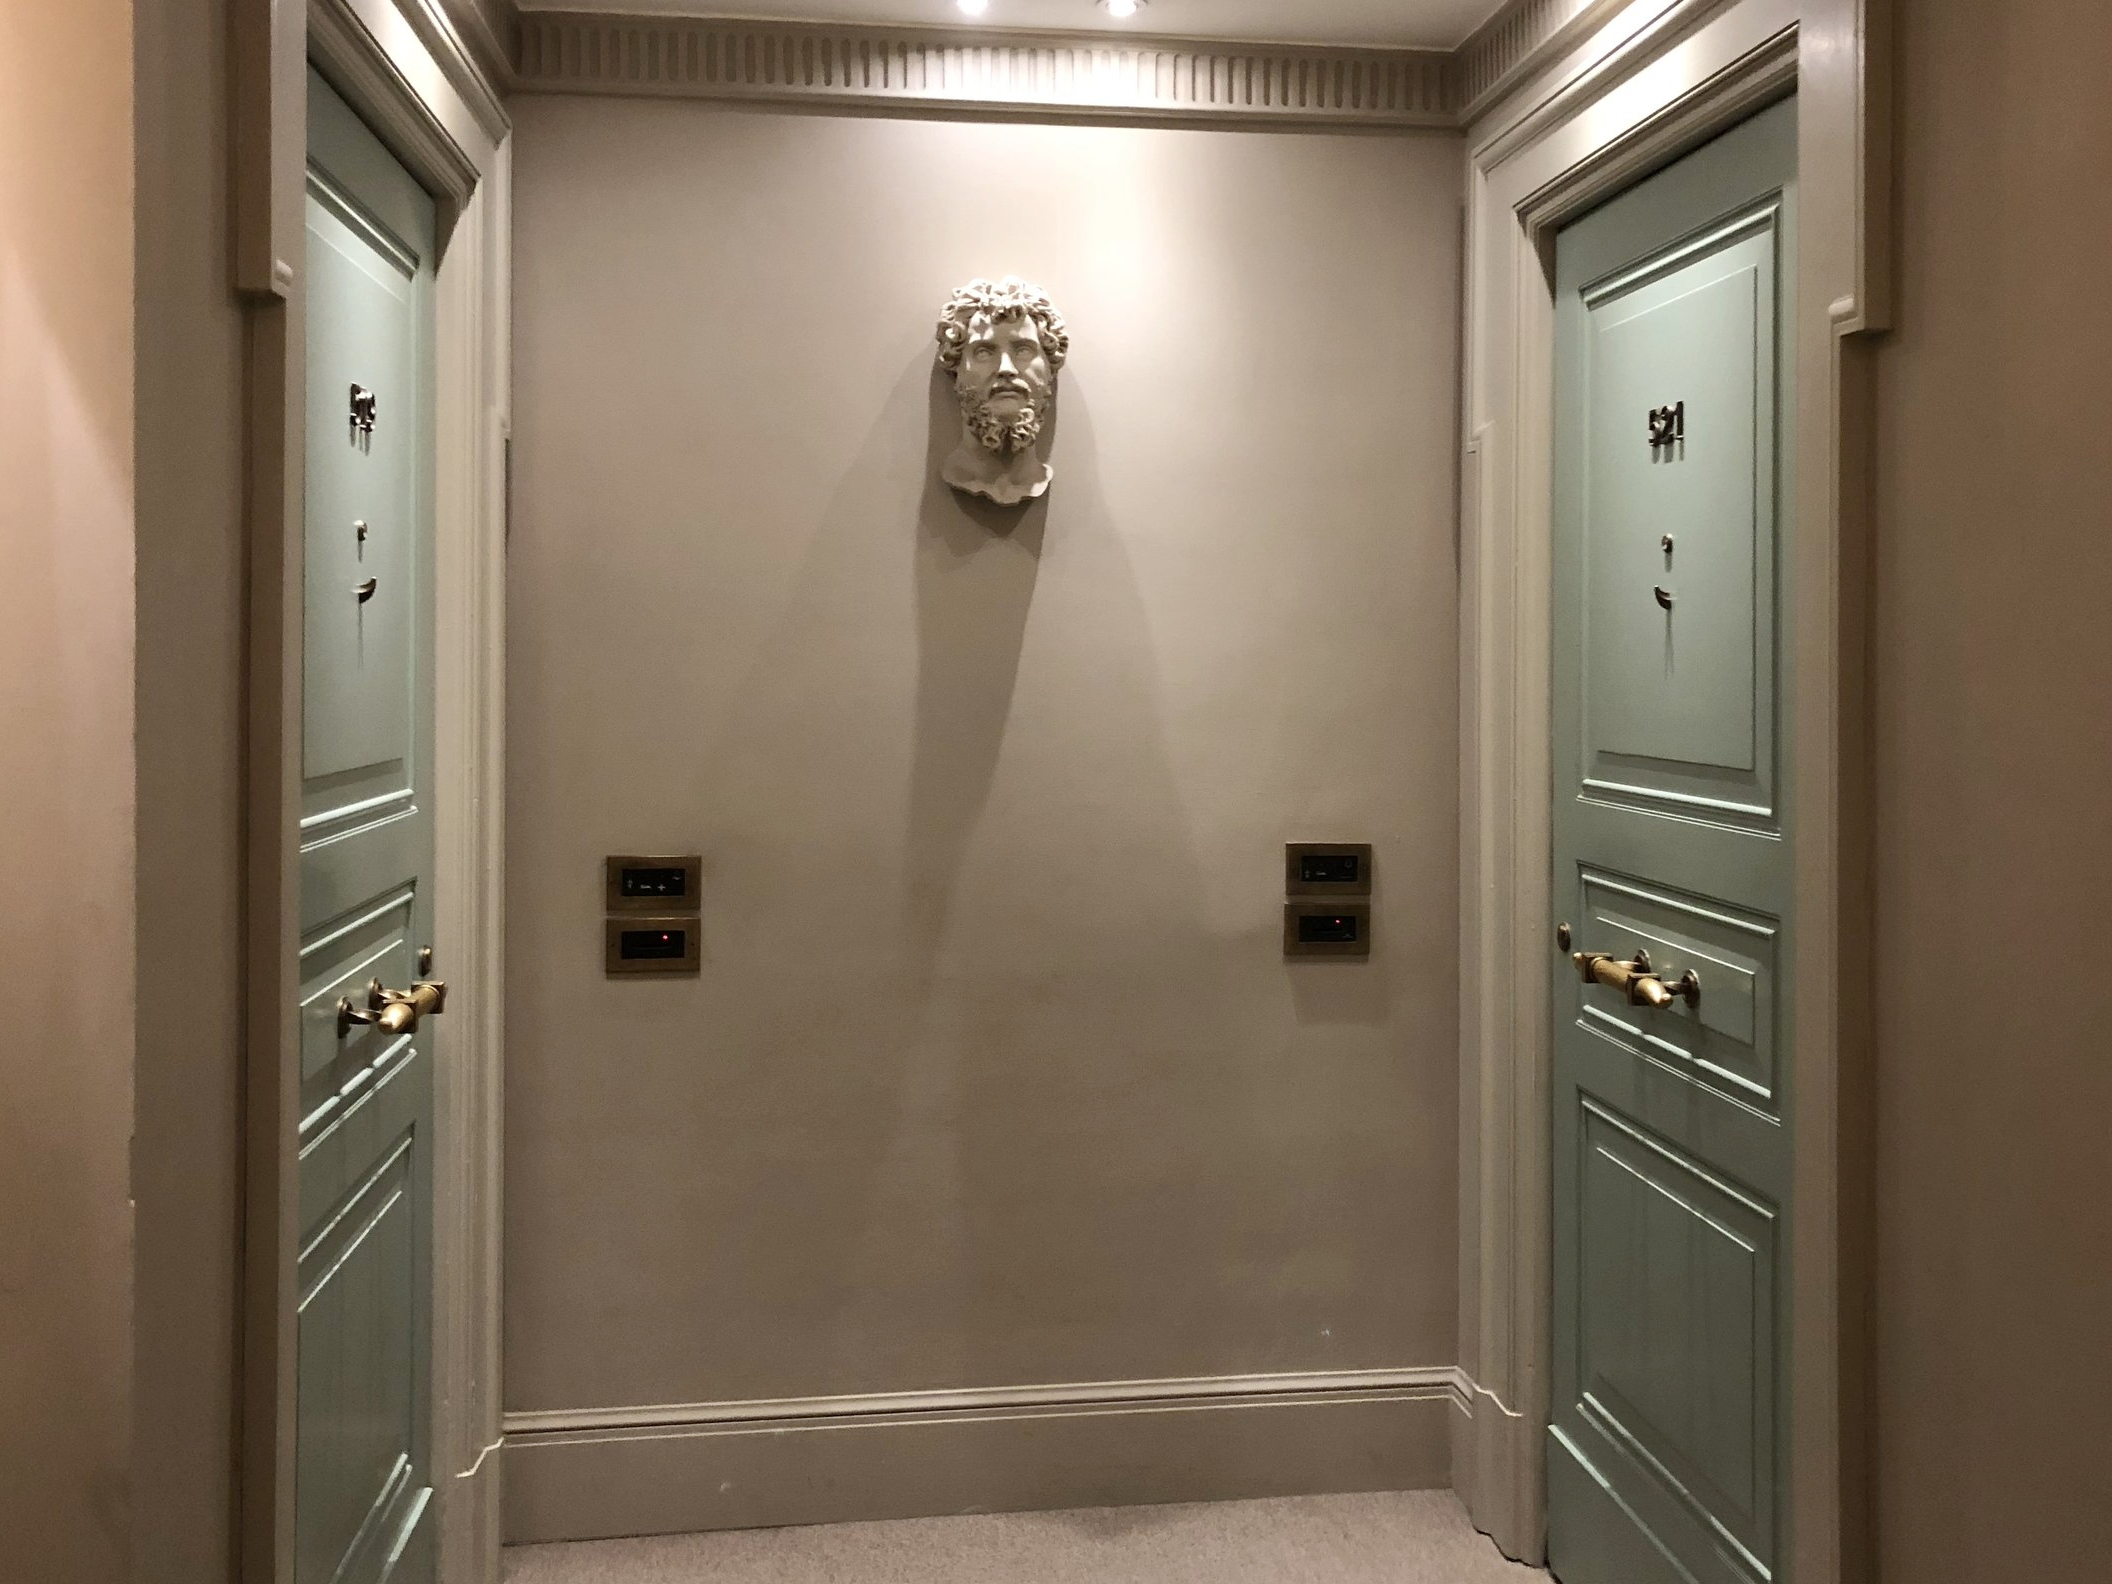 Hallway decorated with Roman elements